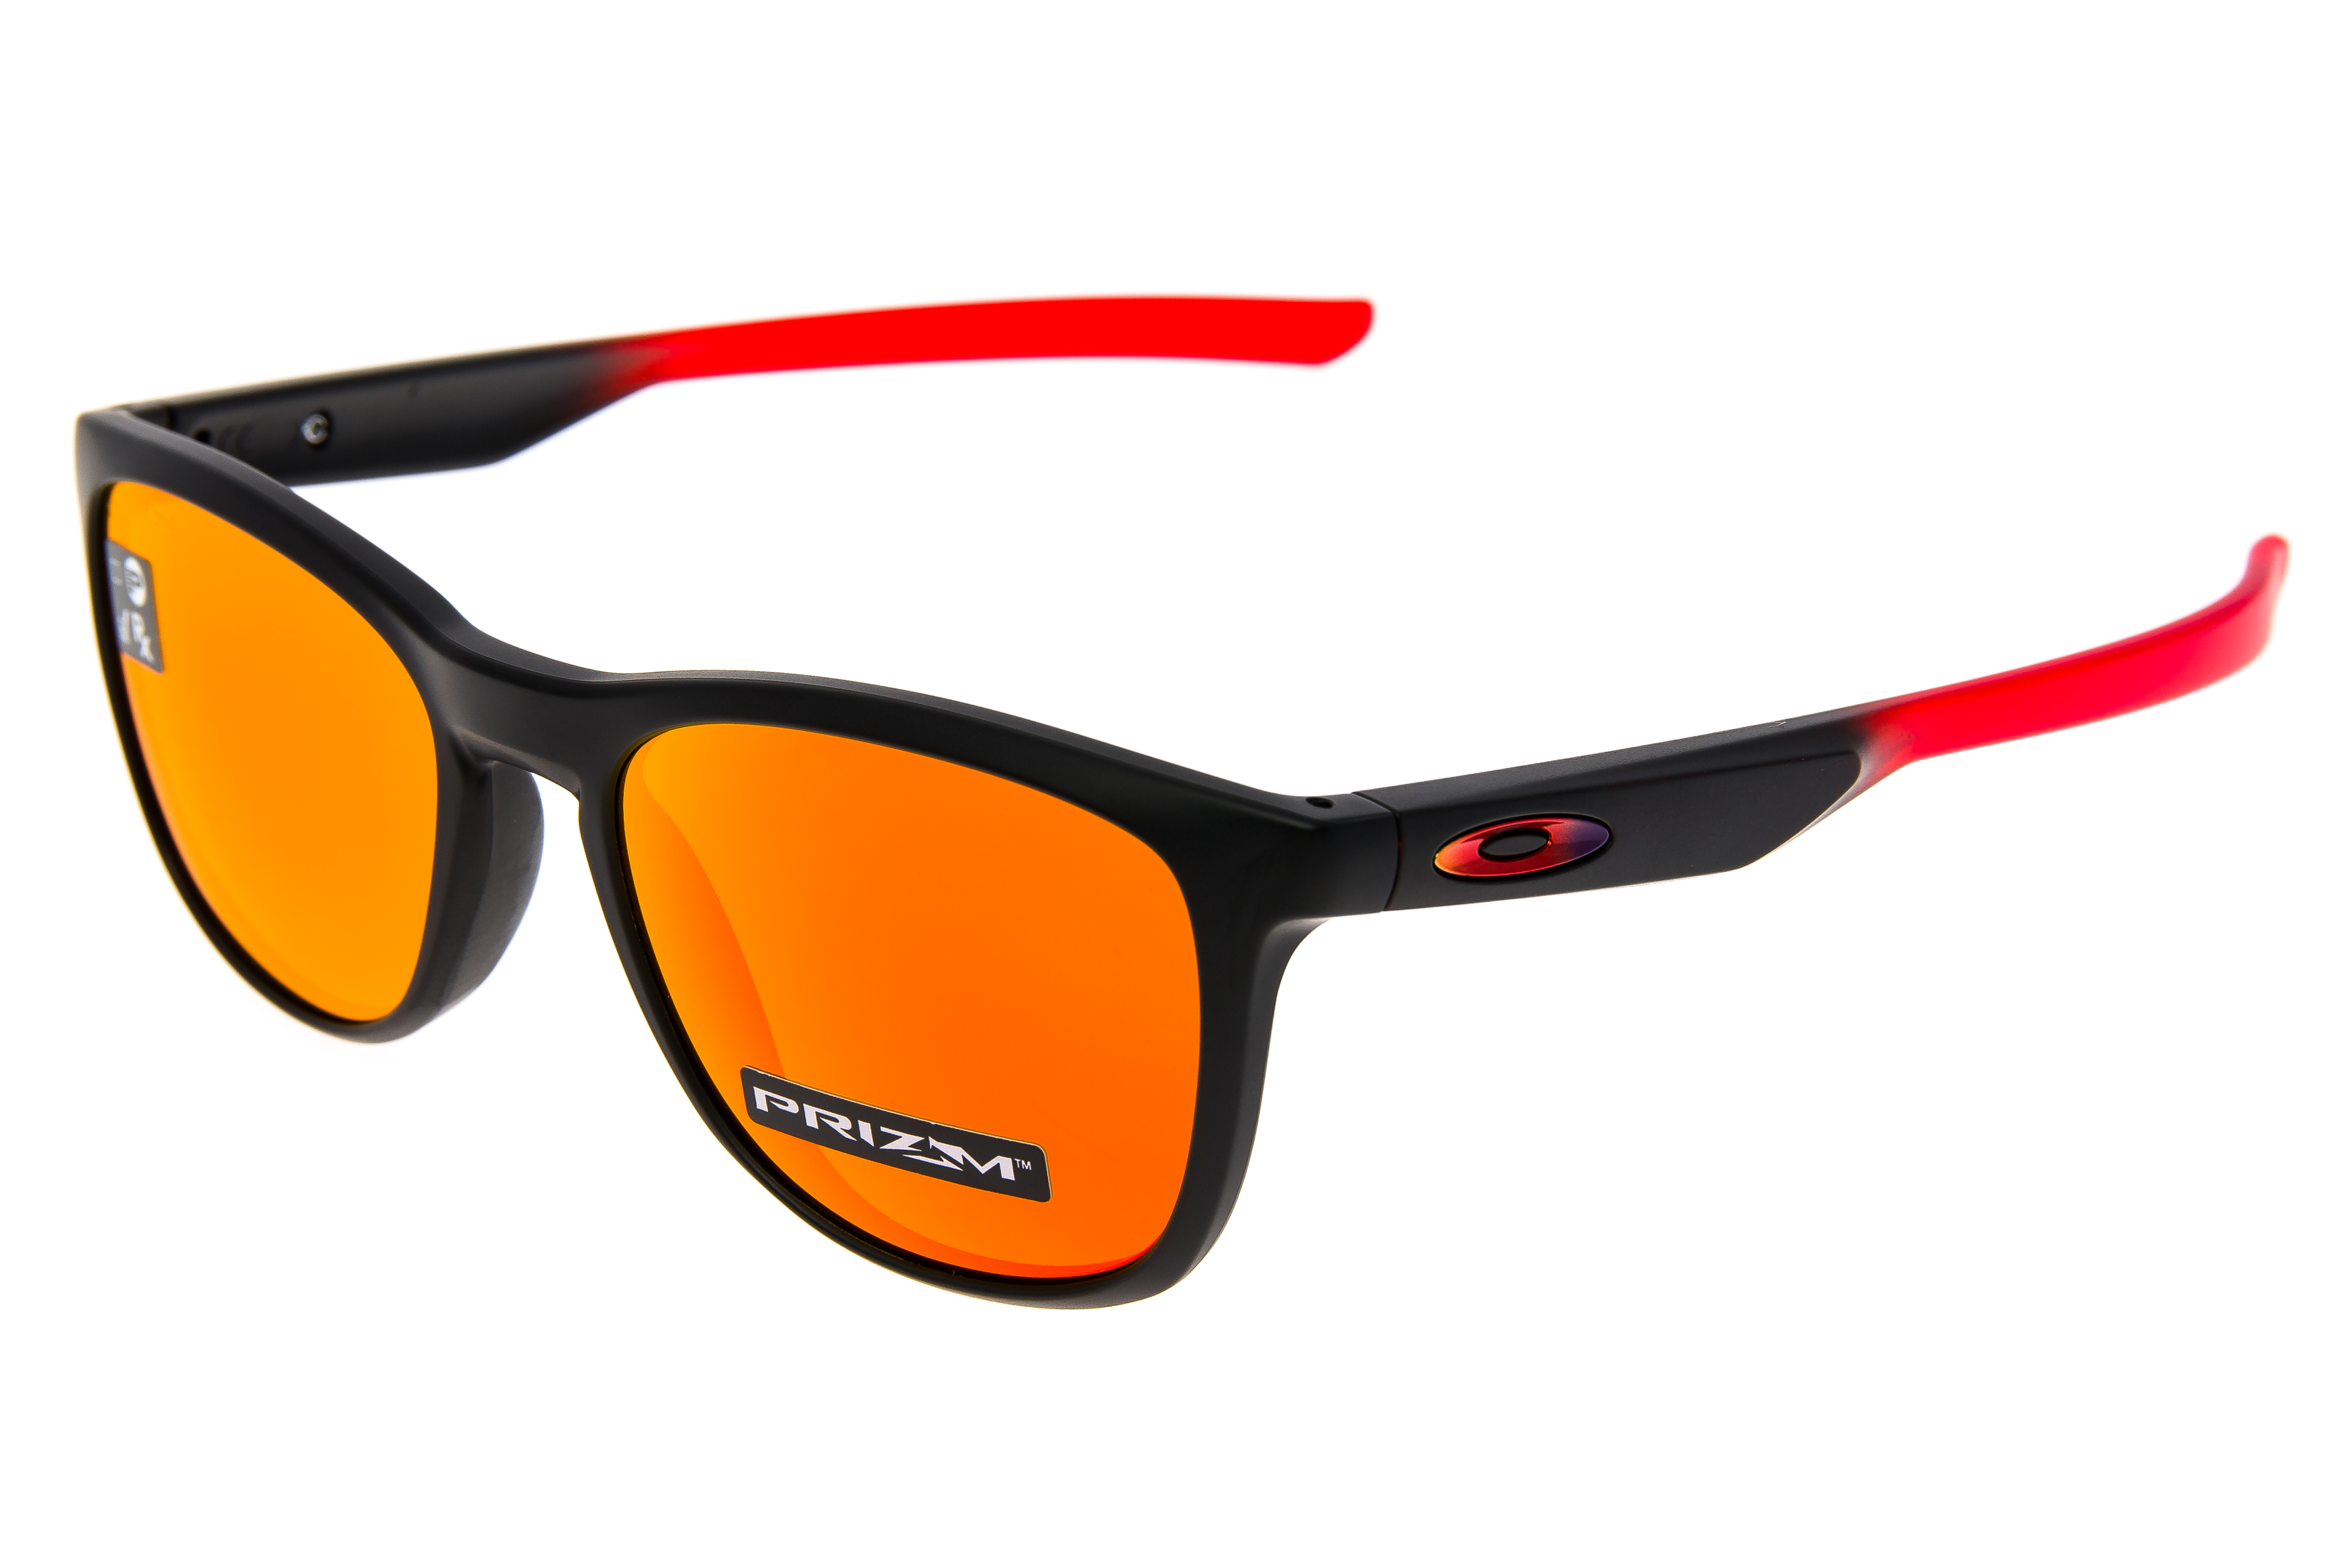 fbce851b559 Details about Oakley Trillbe X Sunglasses Matte Ruby Fade Frame Prizm Ruby  Lens